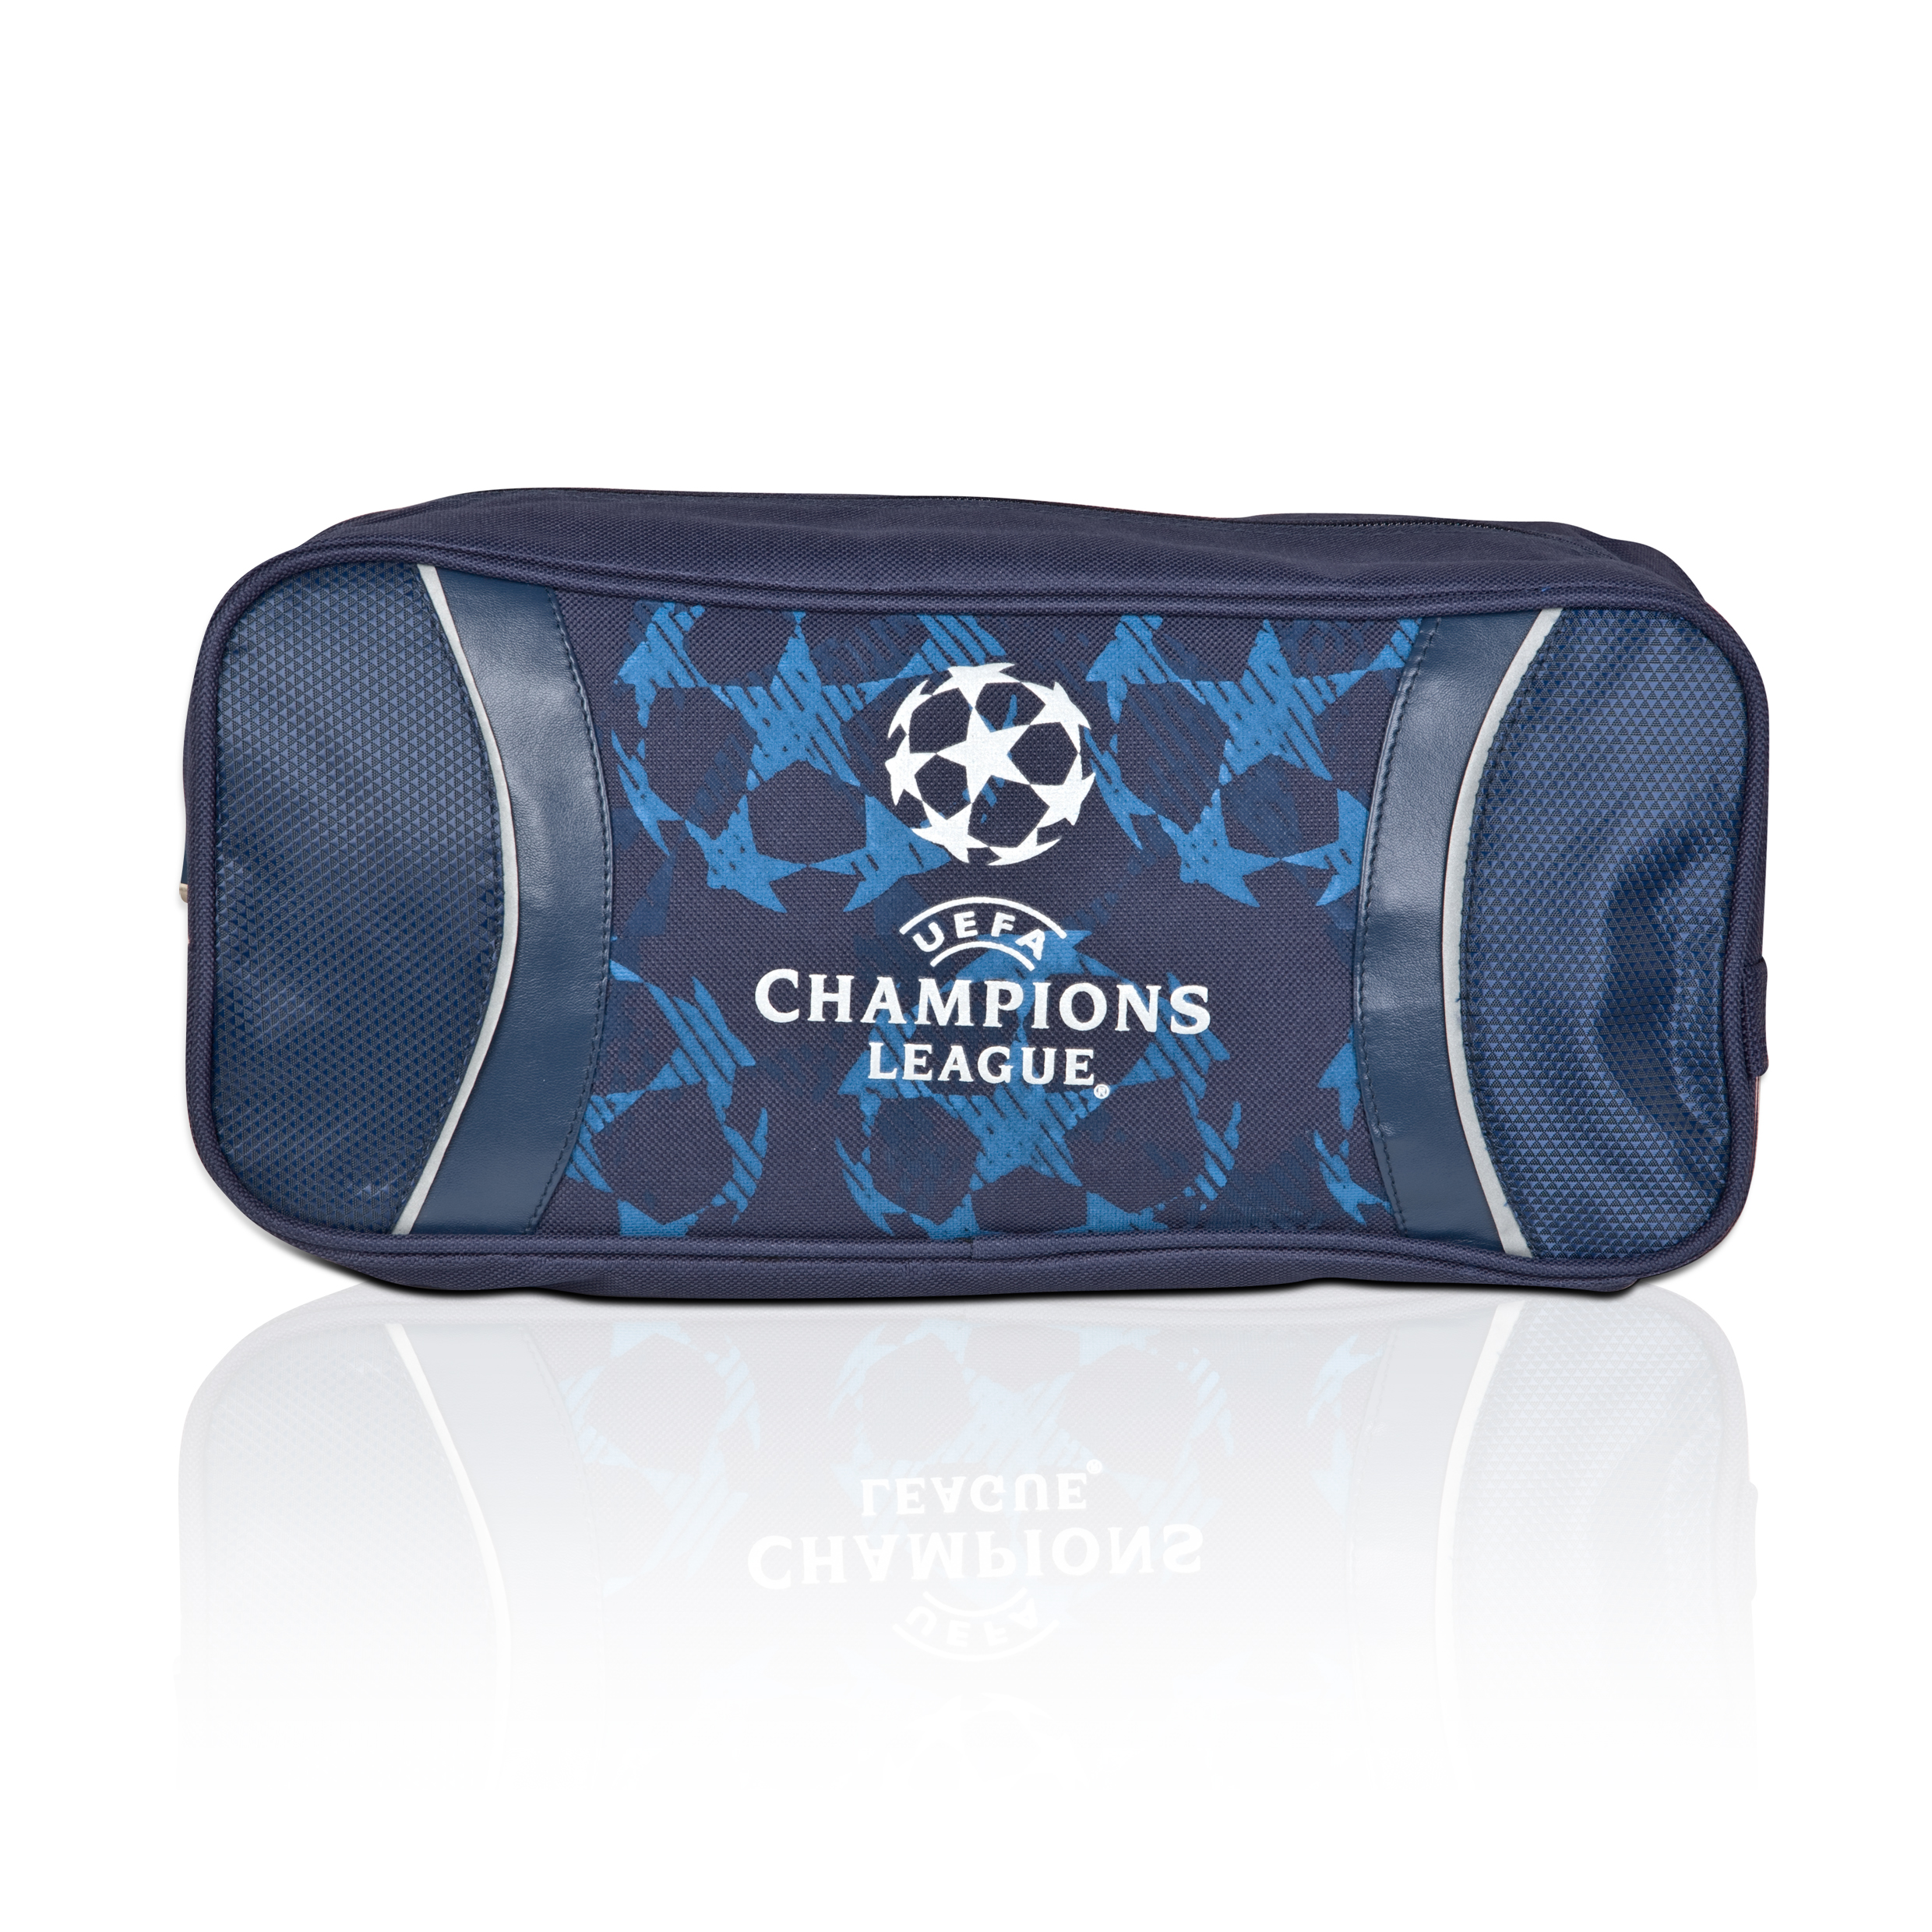 UEFA Champions League Shoe Bag